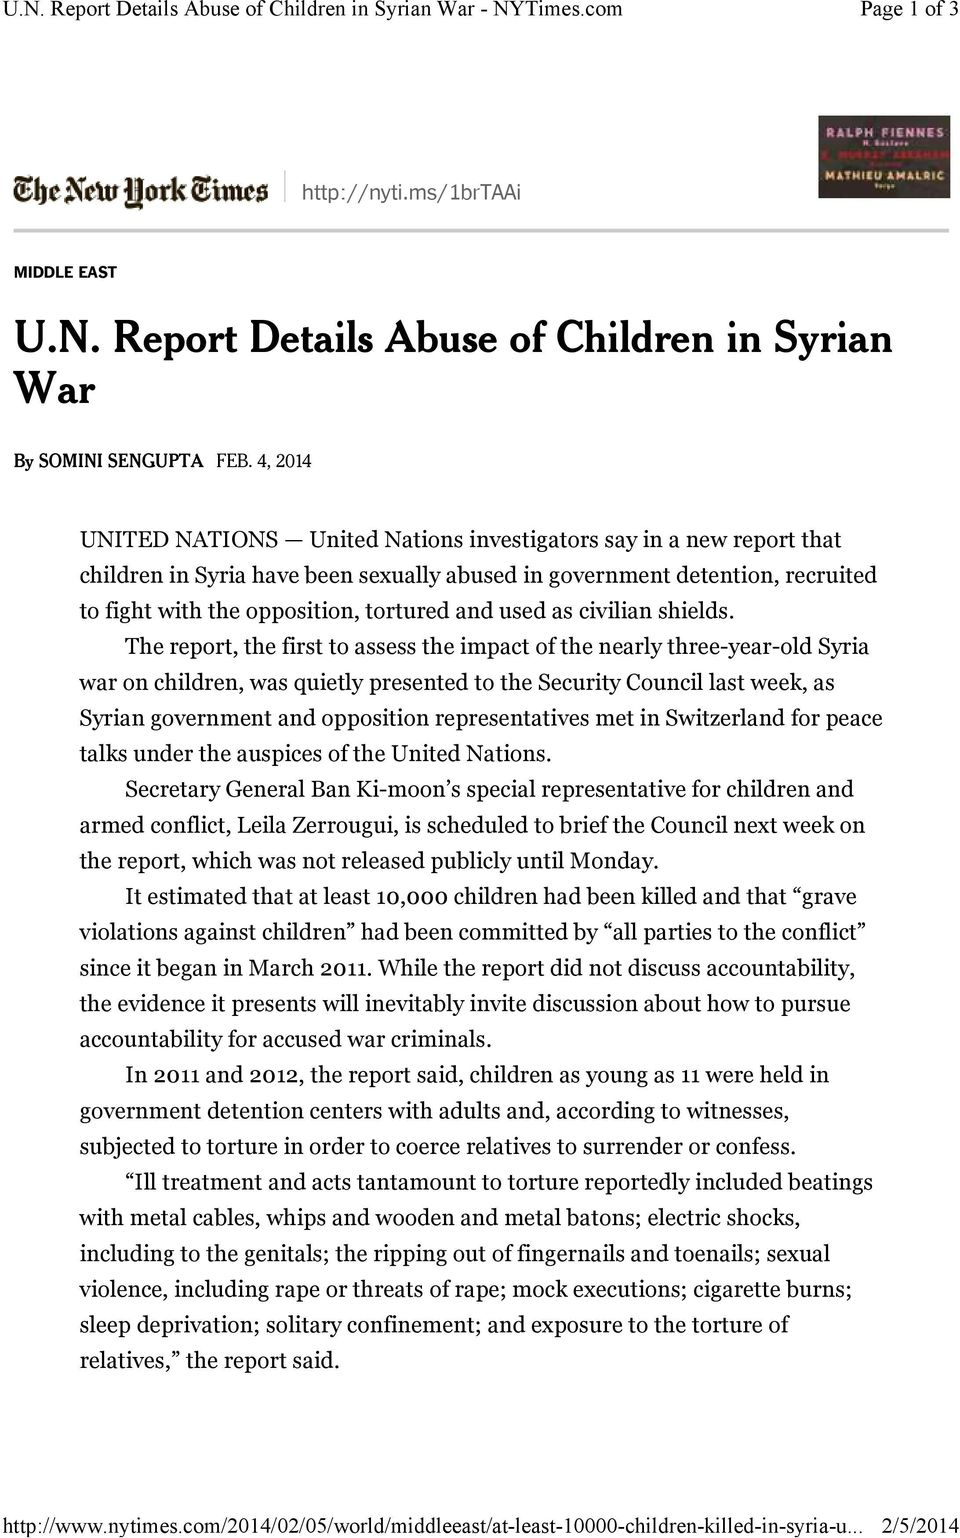 4, 2014 UNITED NATIONS United Nations investigators say in a new report that children in Syria have been sexually abused in government detention, recruited to fight with the opposition, tortured and